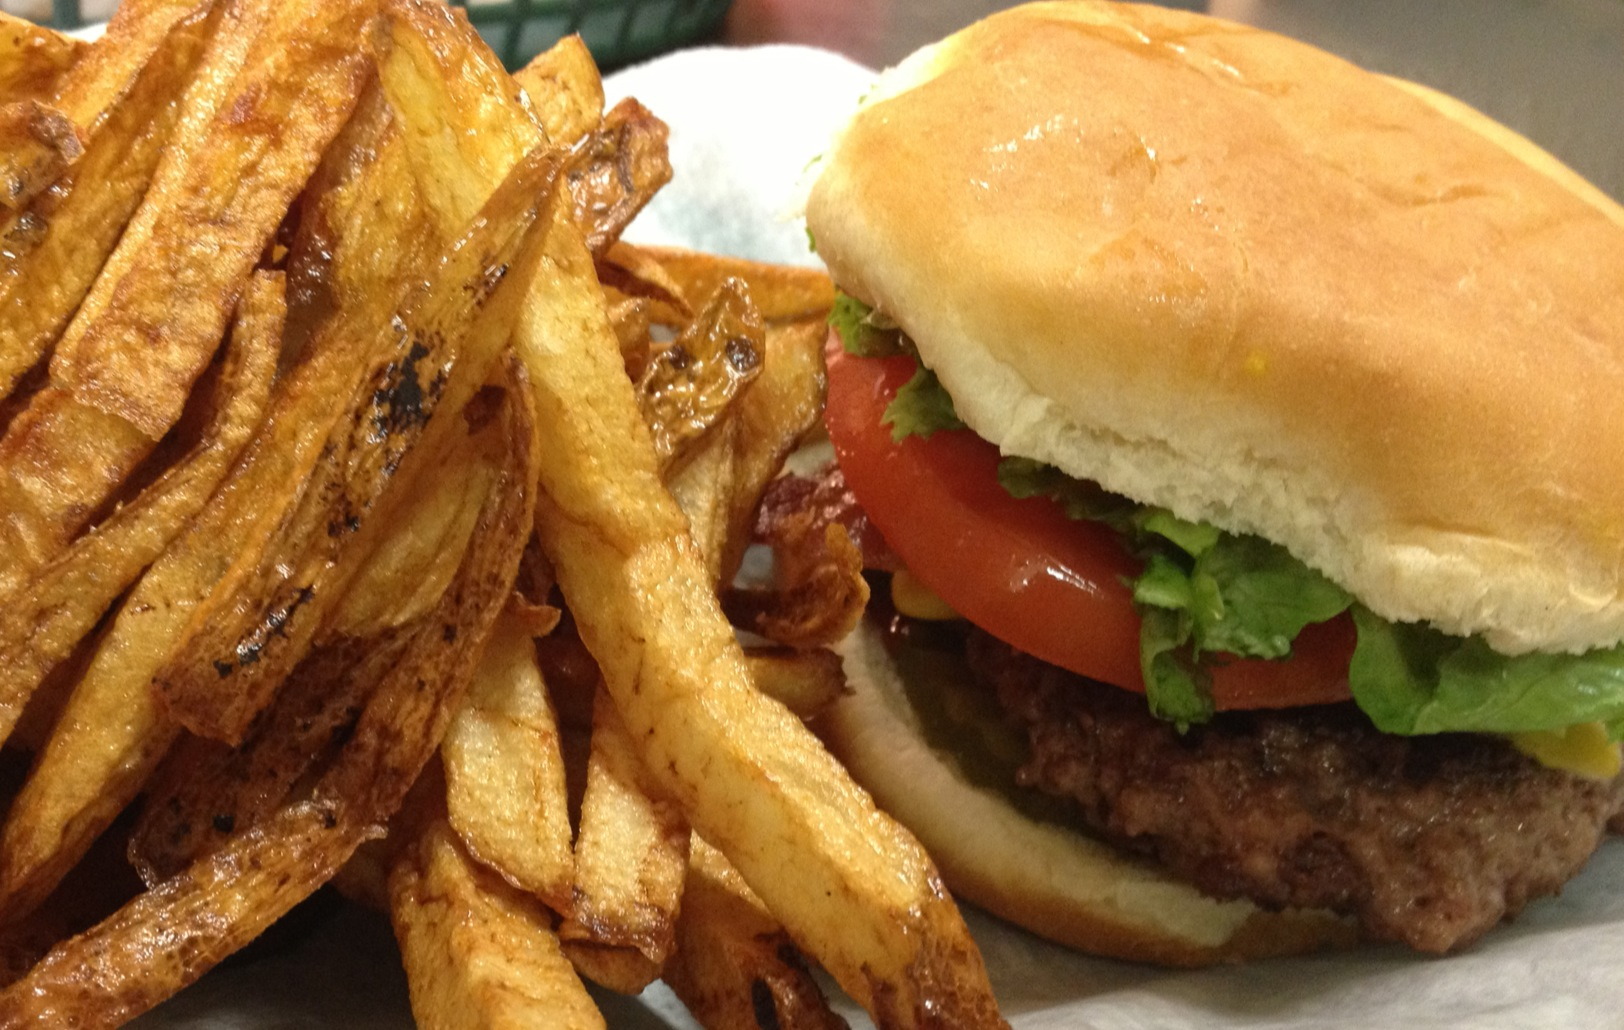 The burger at Phillips Grocery in Oxford, MS was cited by Atlanta chef  Robert Phalen as his all-time favorite.